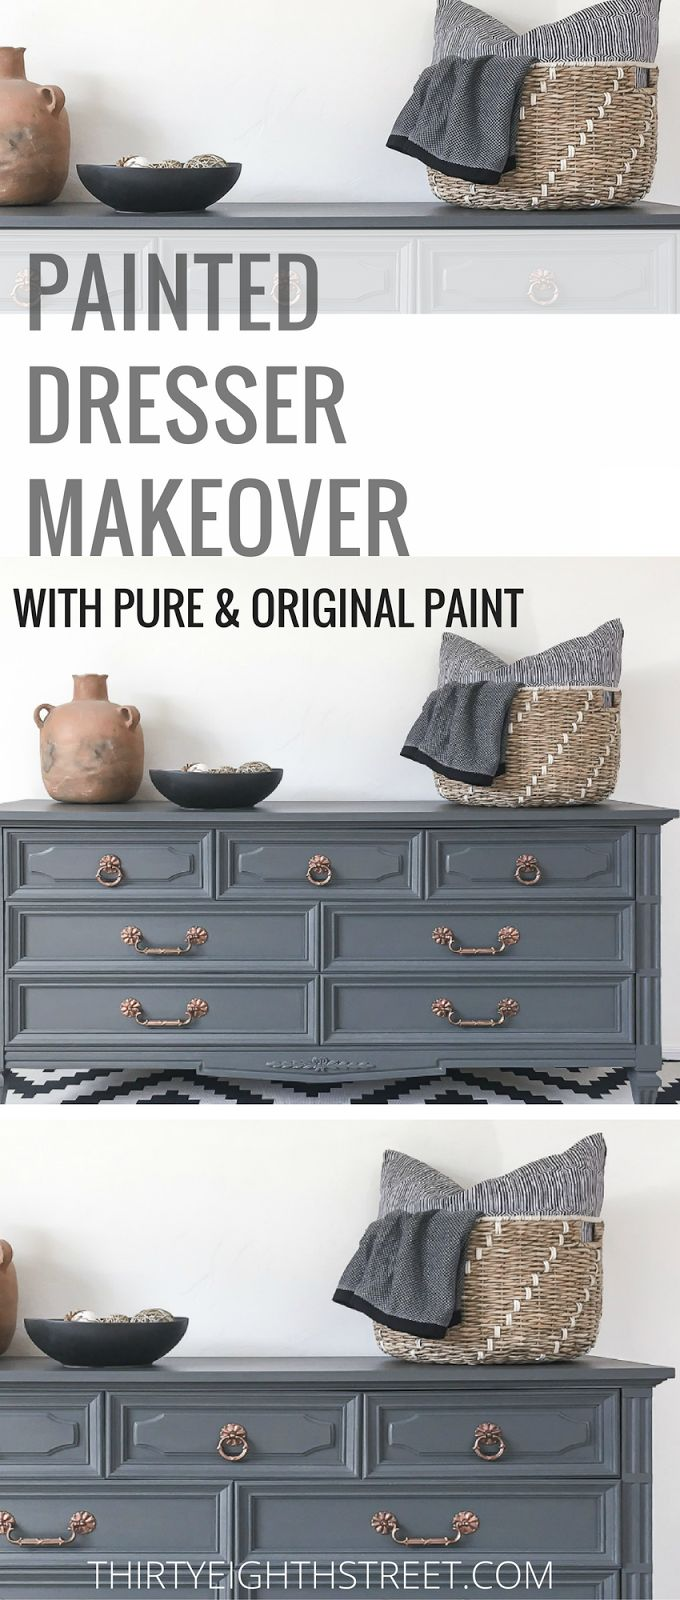 How To Paint Wood Furniture! Painting Furniture With Chalk Paint Gives Your Furniture A Refresh! Grey and Copper Painted Dresser Makeover is GORGEOUS! LOTS of Furniture Makeovers and Painted Furniture Tutorials. #paintedfurniture #paintingfurniture #chalkpaint #chalkpaintfurniture